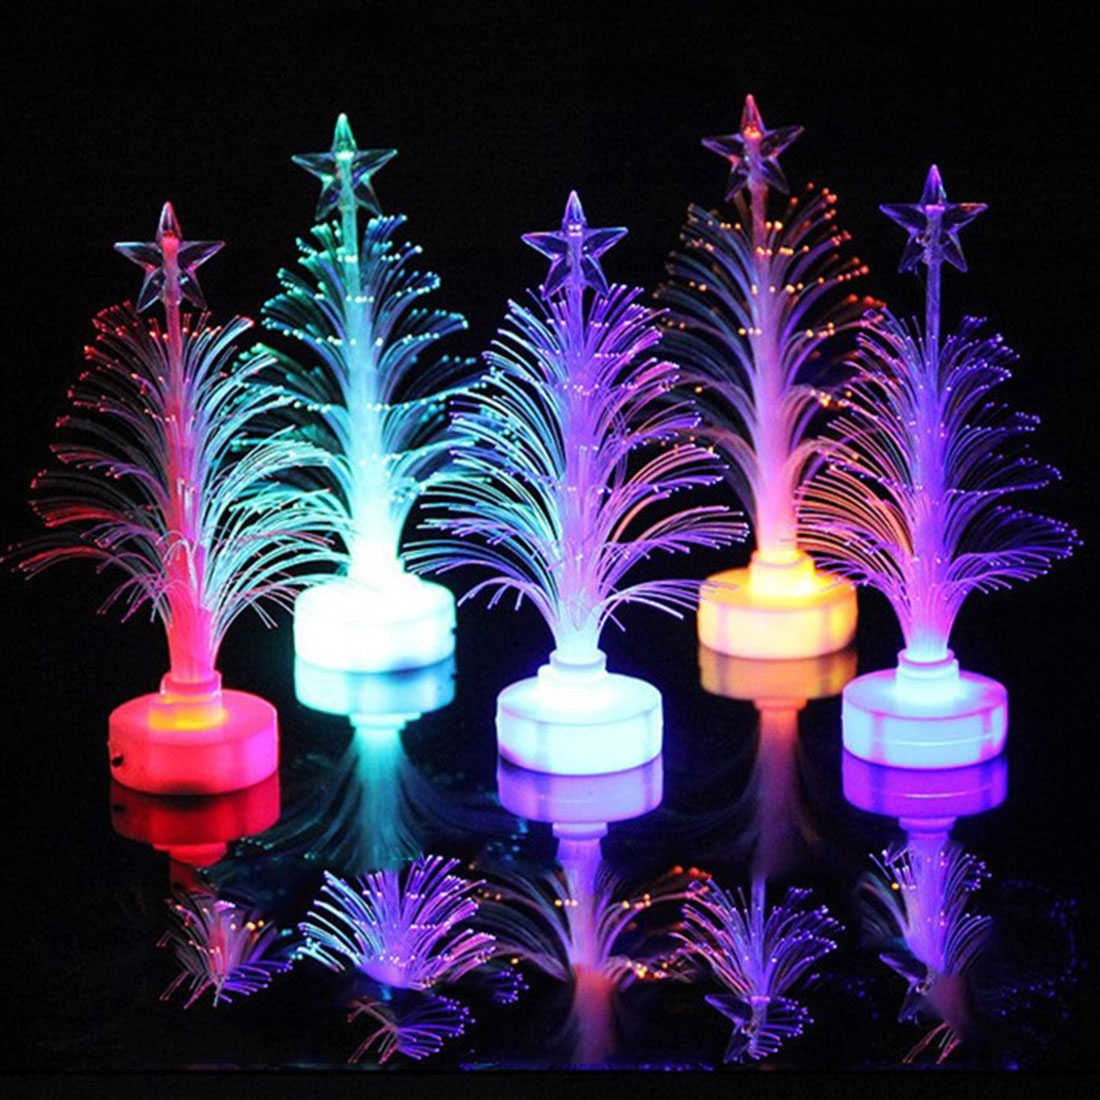 Colorful LED Fiber Optic Nightlight Decoration Light Lamp Mini Christmas Tree Color Changing